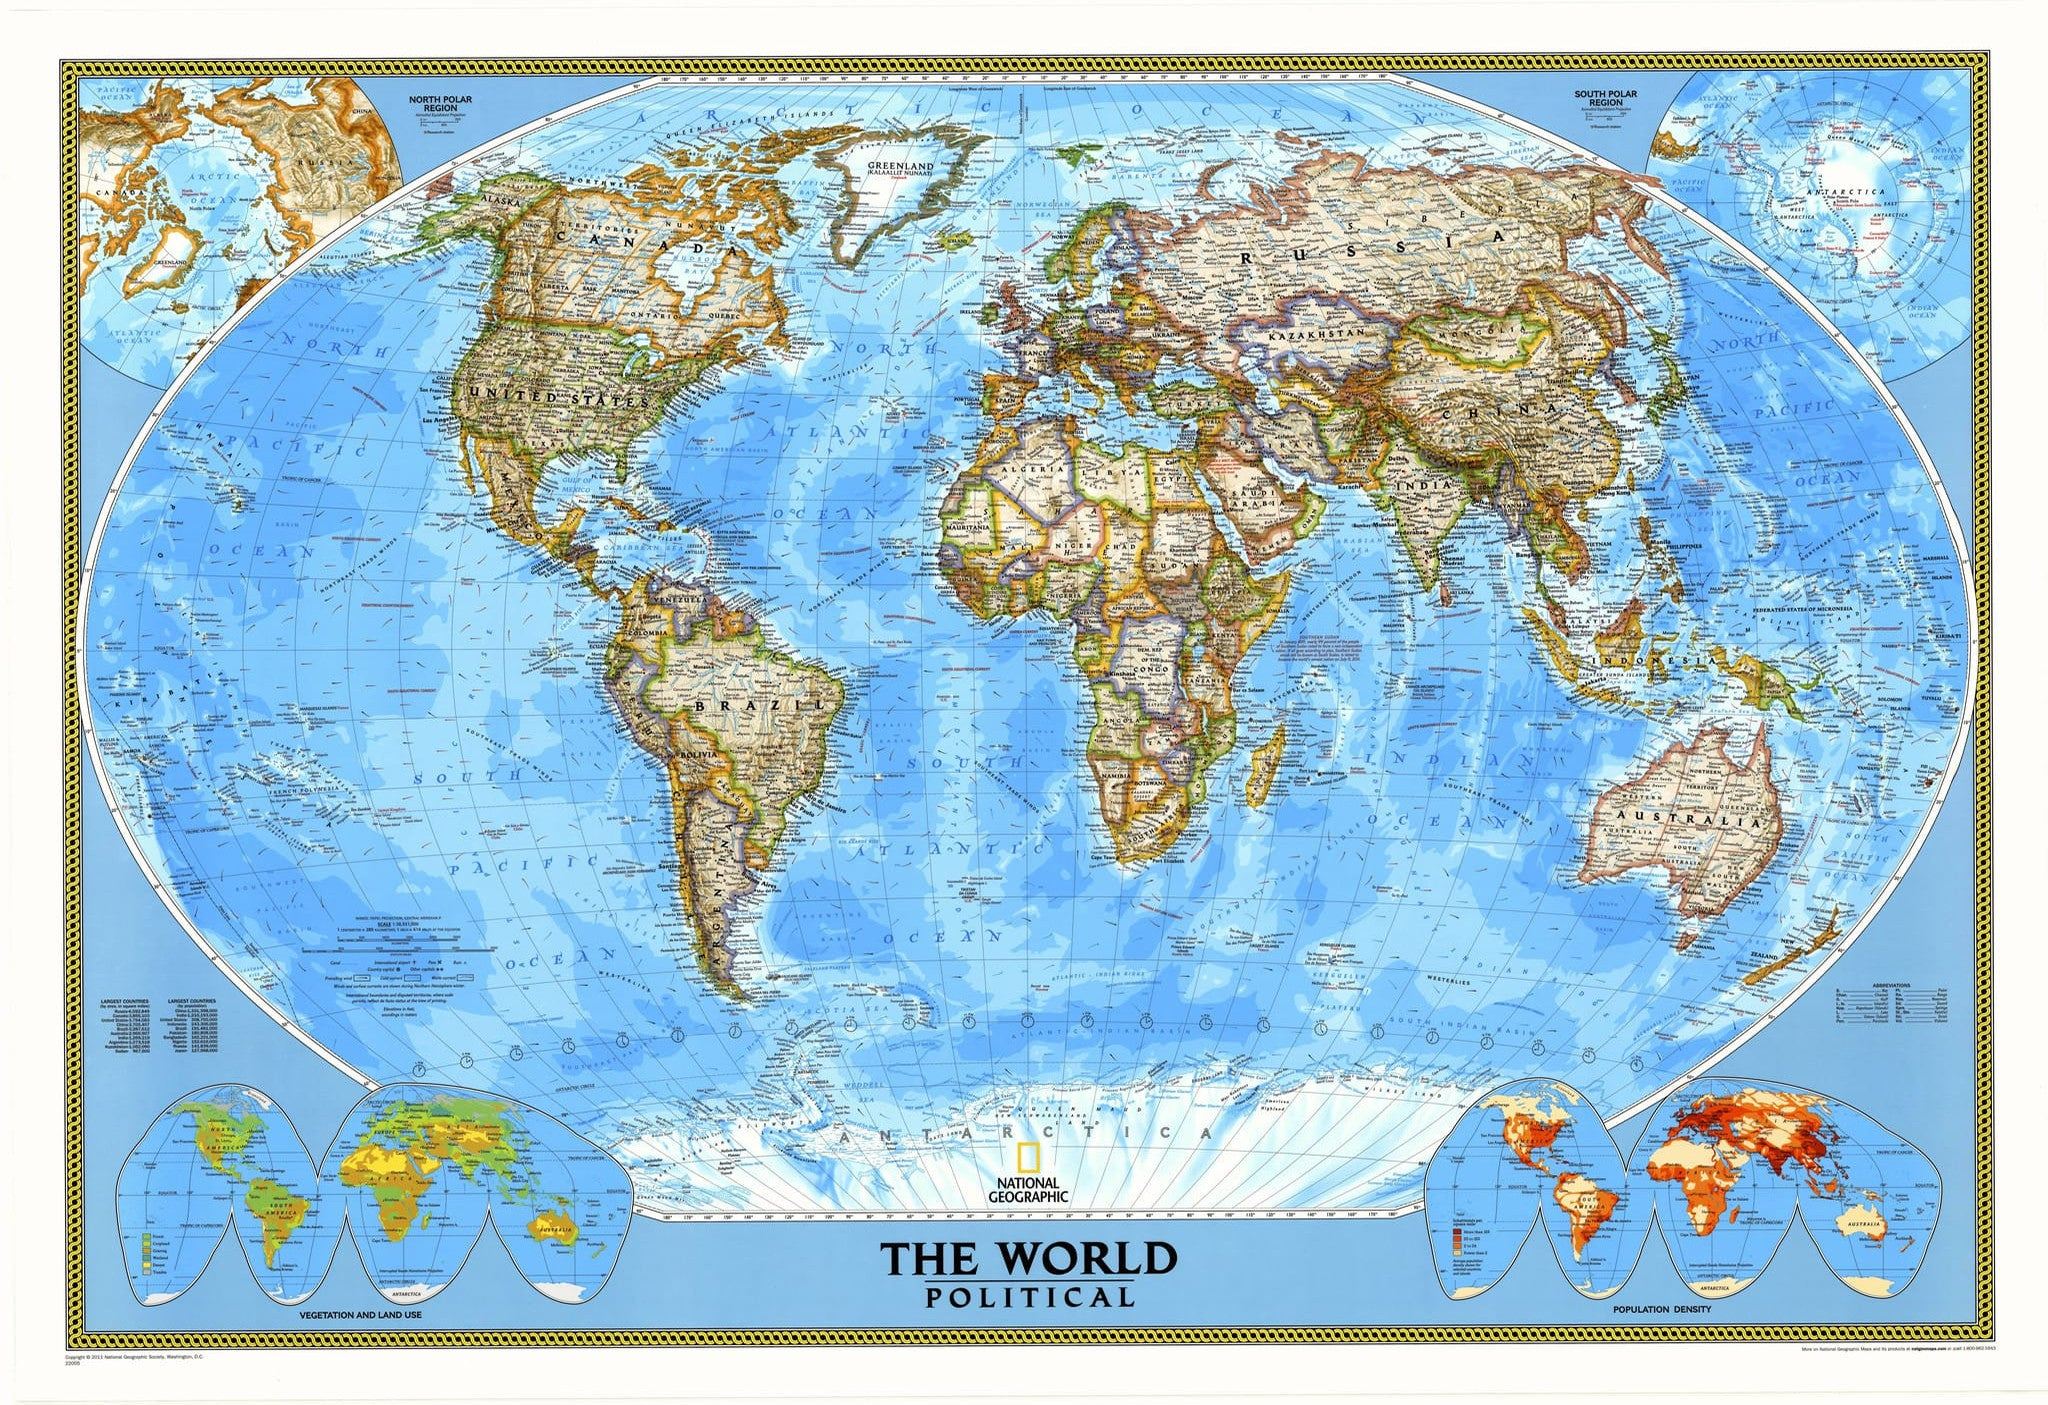 World Political - NGS, Buy World Political Map - Mapworld